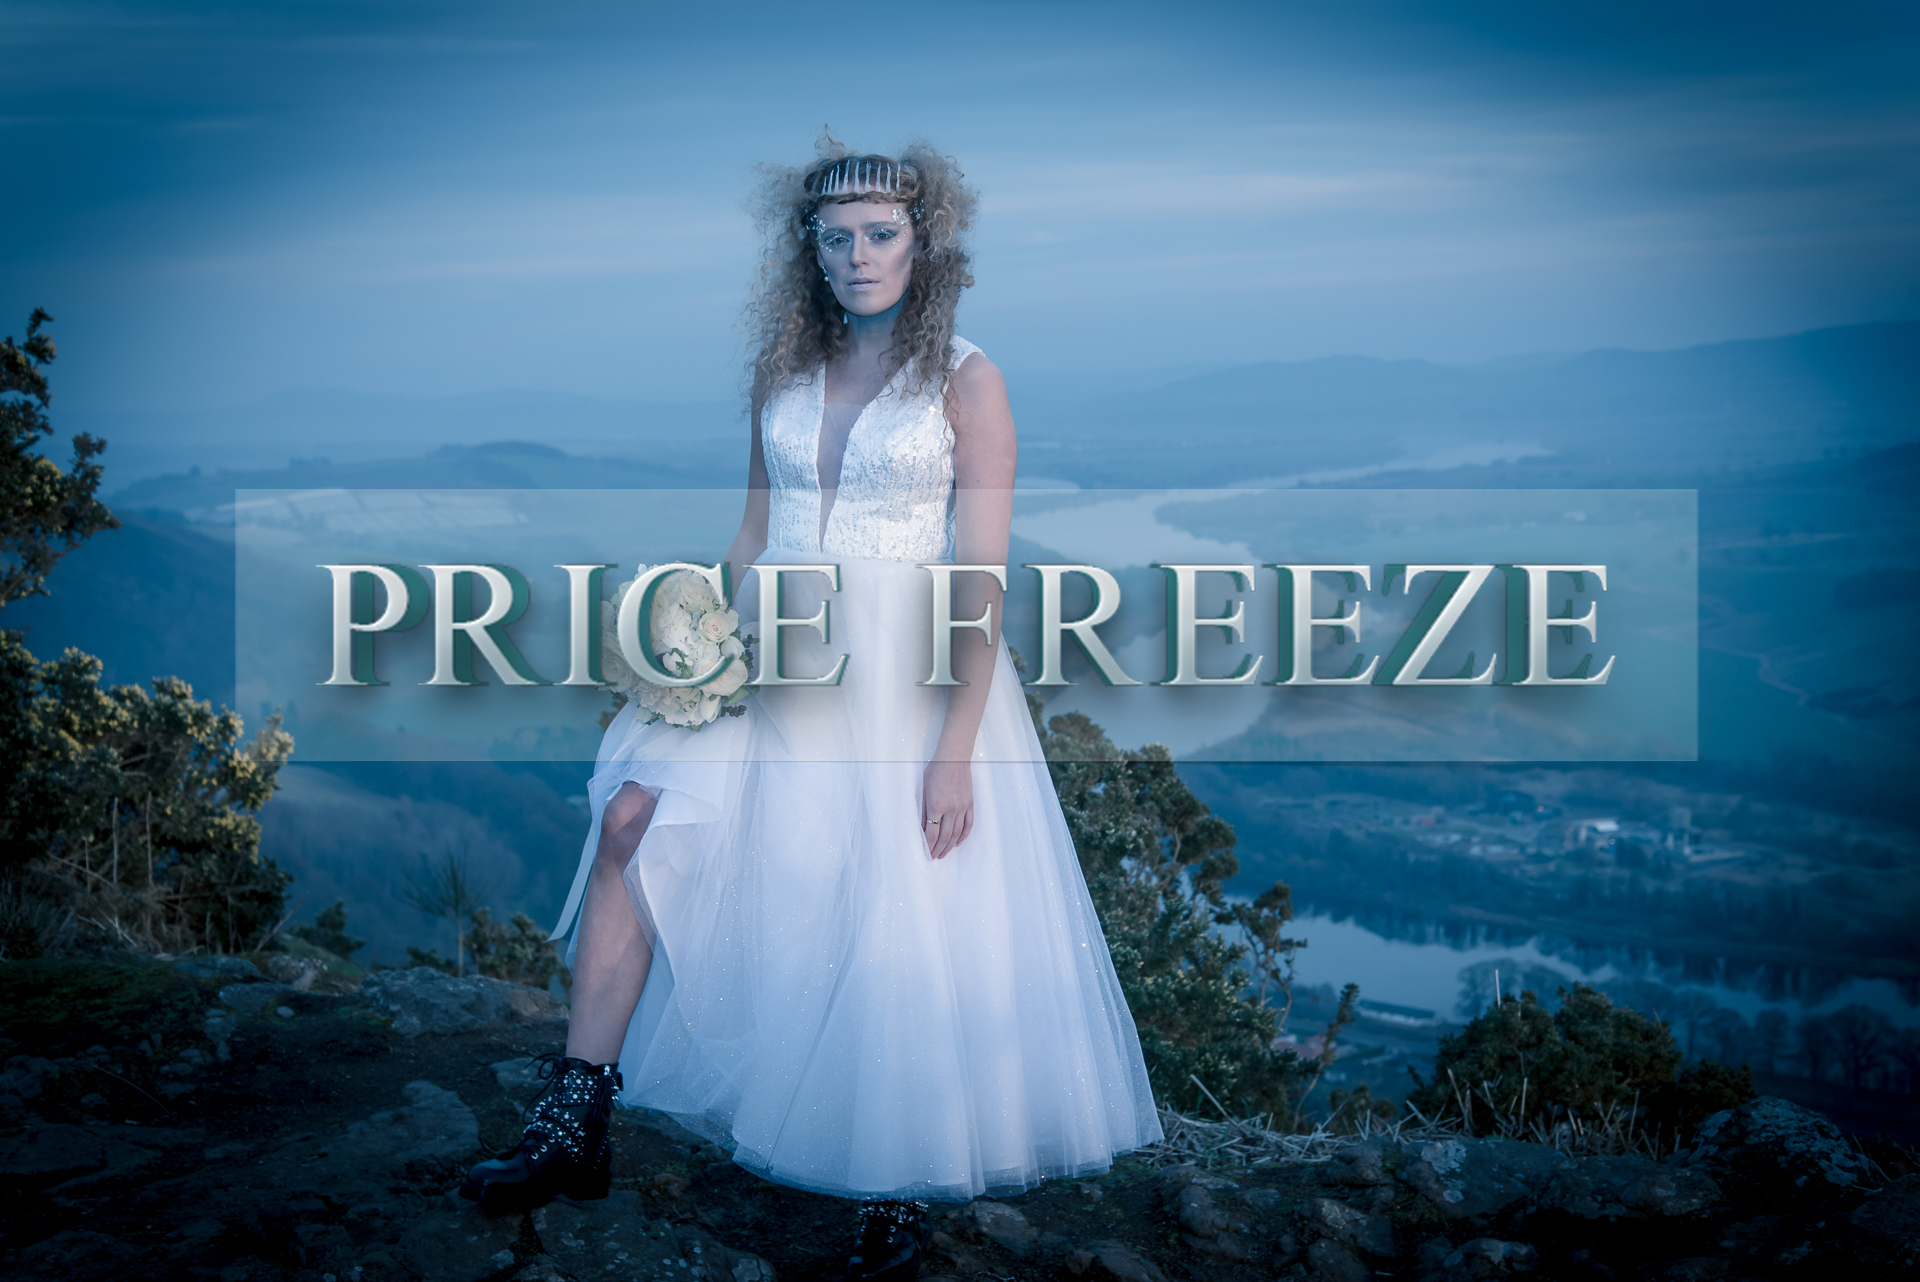 Book your wedding now, price freeze !!